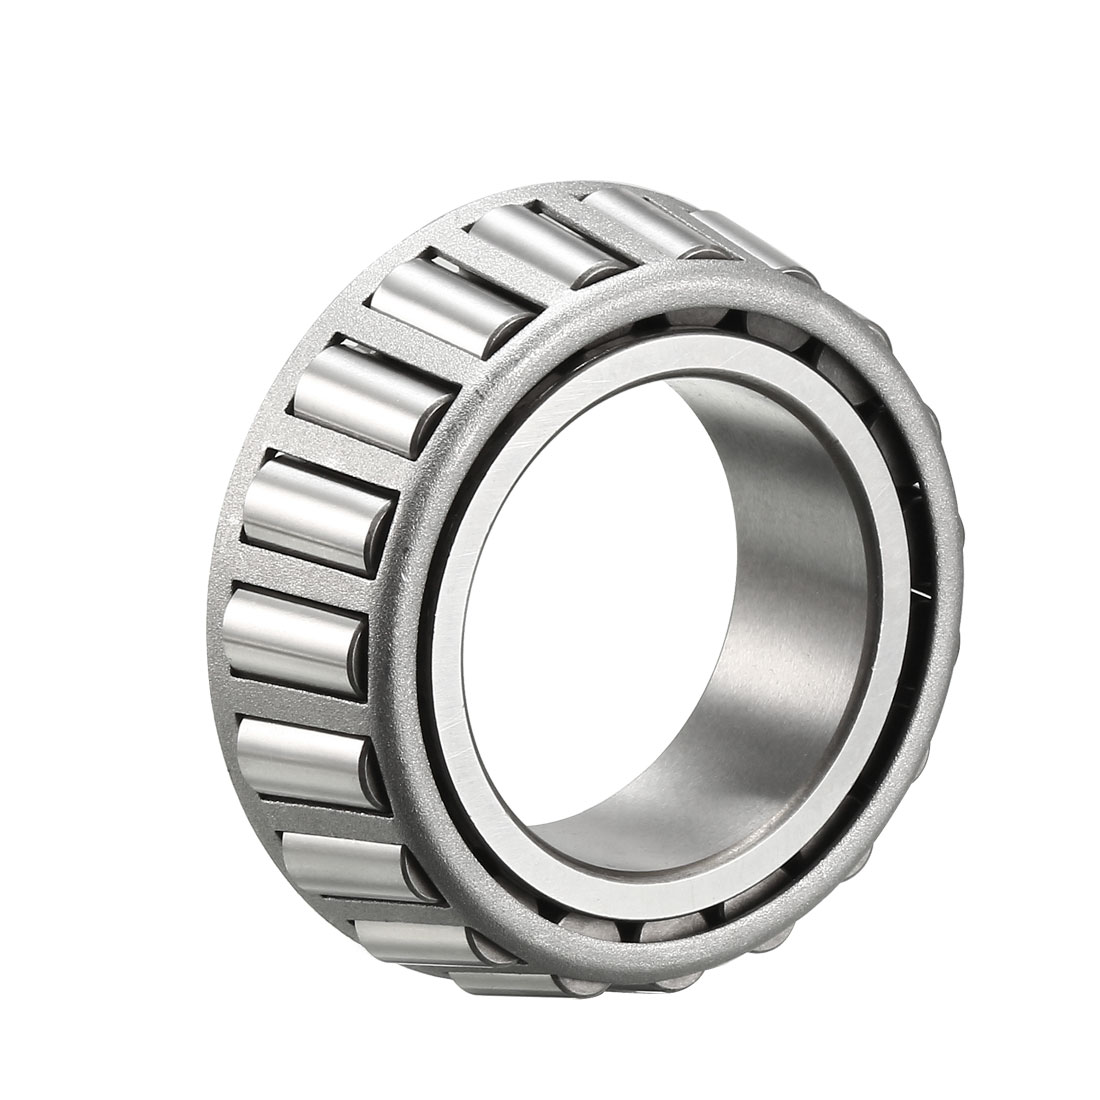 "45291 Tapered Roller Bearing Single Cone 2.25"" Bore 1.2188"" Width"